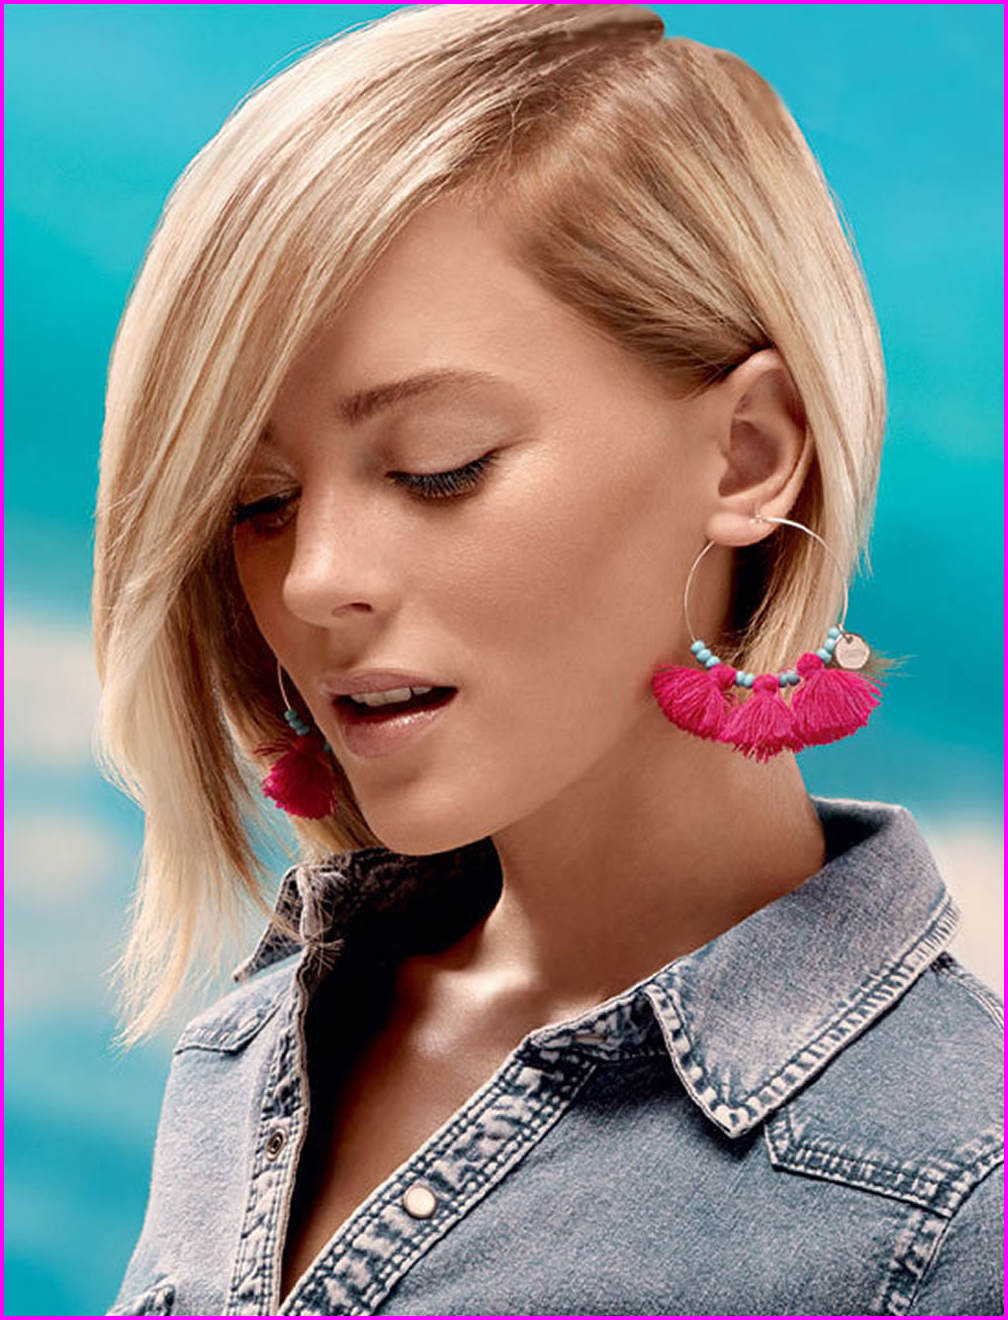 Best ideas about Short Haircuts For Girls 2019 . Save or Pin Best Short Haircuts for Women 2019 Best Short Haircuts Now.